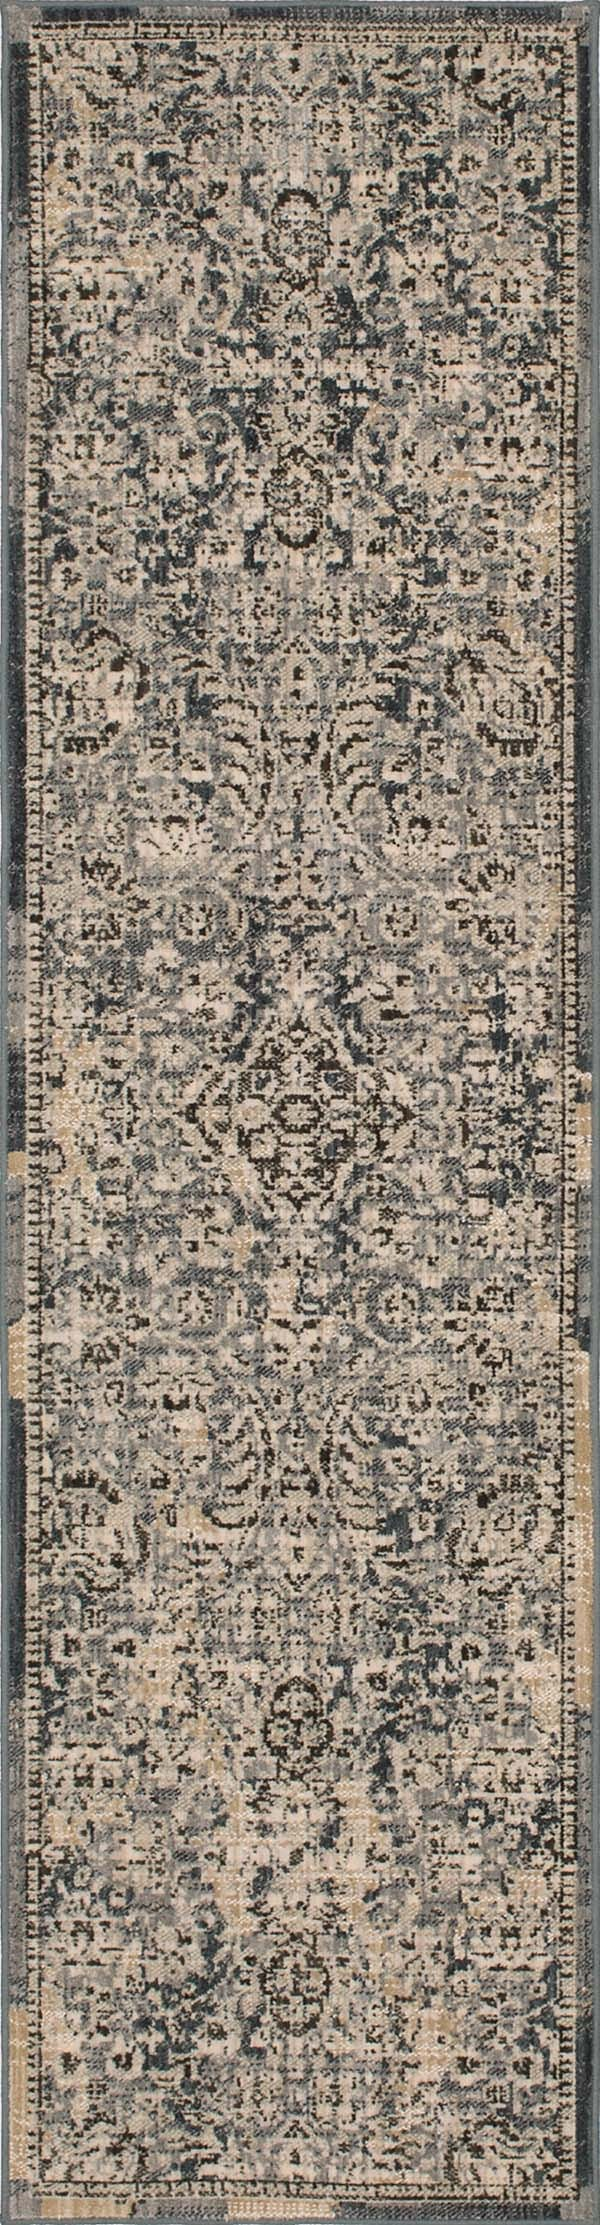 Denim, Ivory, Charcoal (39478-22005) Vintage / Overdyed Area Rug